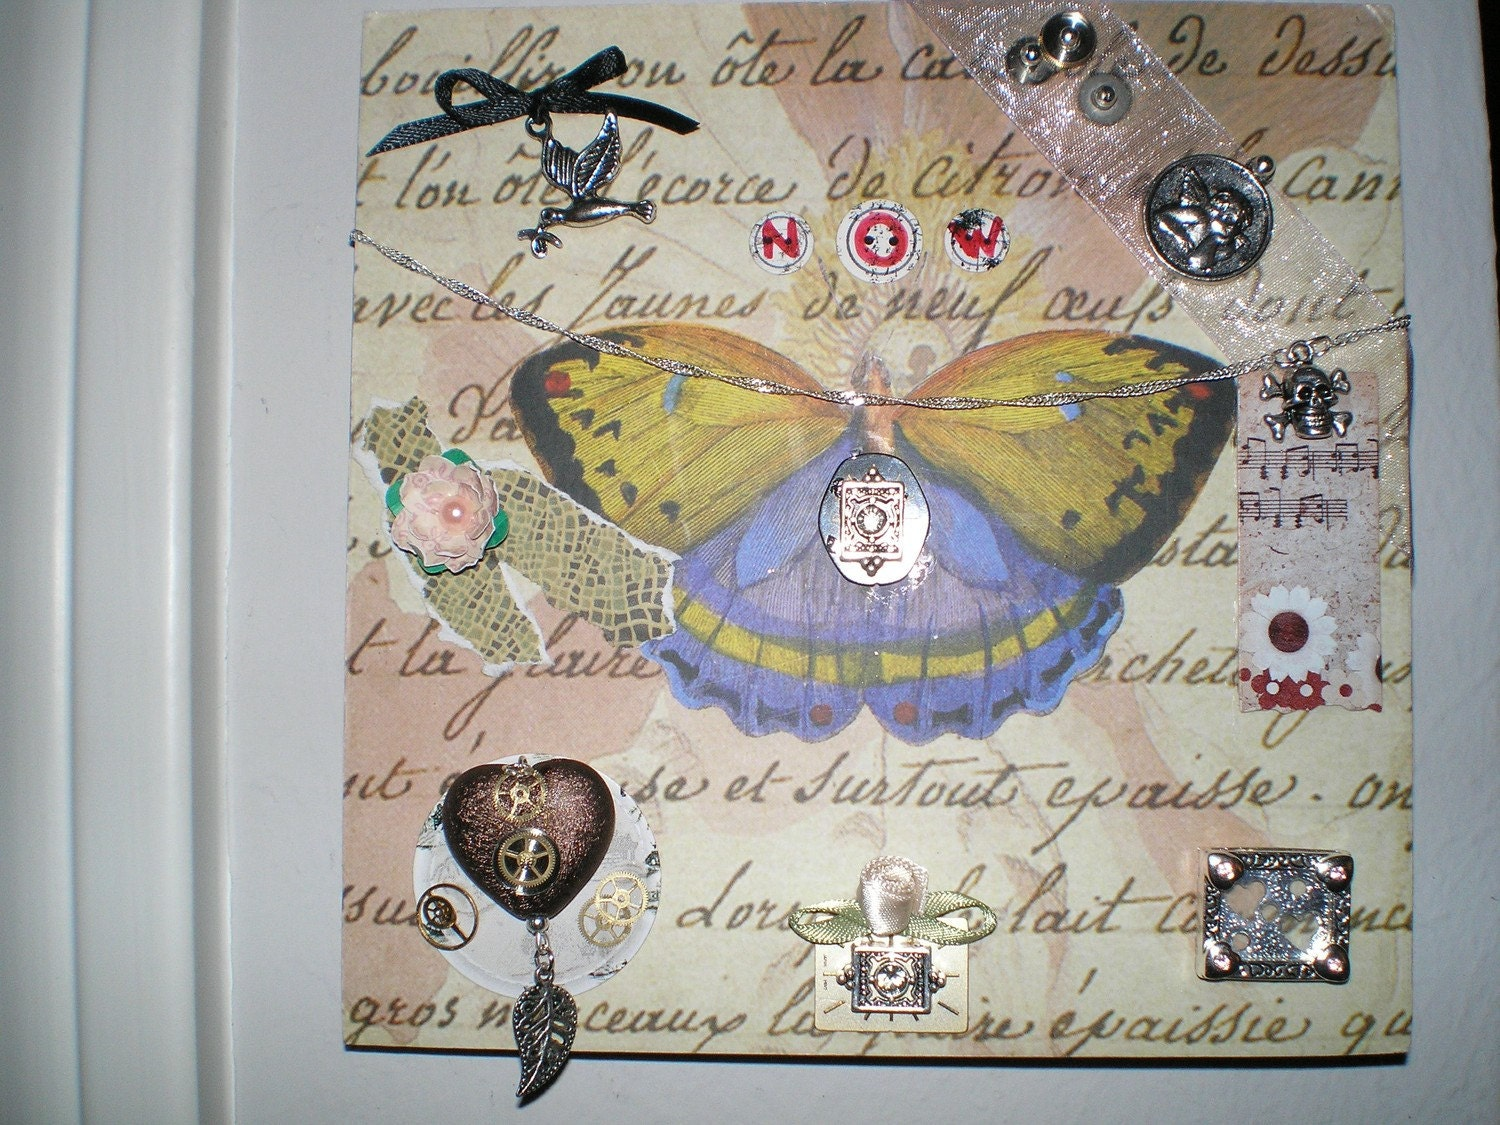 She Dreams of Flight 3 - Part 3 in my 4-part series of OOAK Signed Altered Art Collage Mixed Media Plaques with Jewelry Butterflies Dragonflies Skulls Paper Flowers Heart Watch Parts Chains